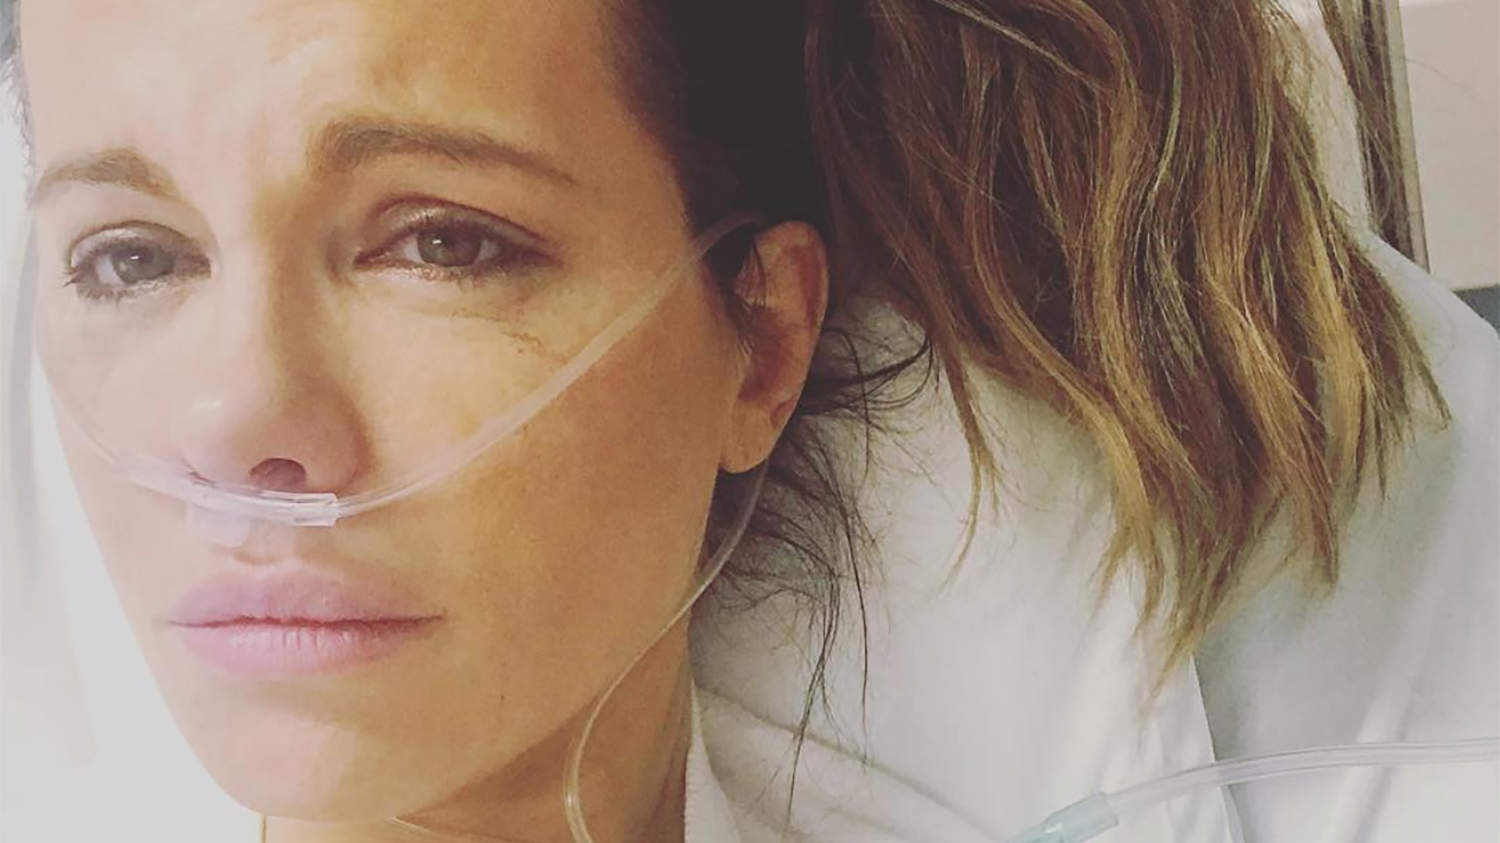 Kate Beckinsale Hospitalized for Ruptured Ovarian Cyst as Stars Show Support: This 'Really Hurts'